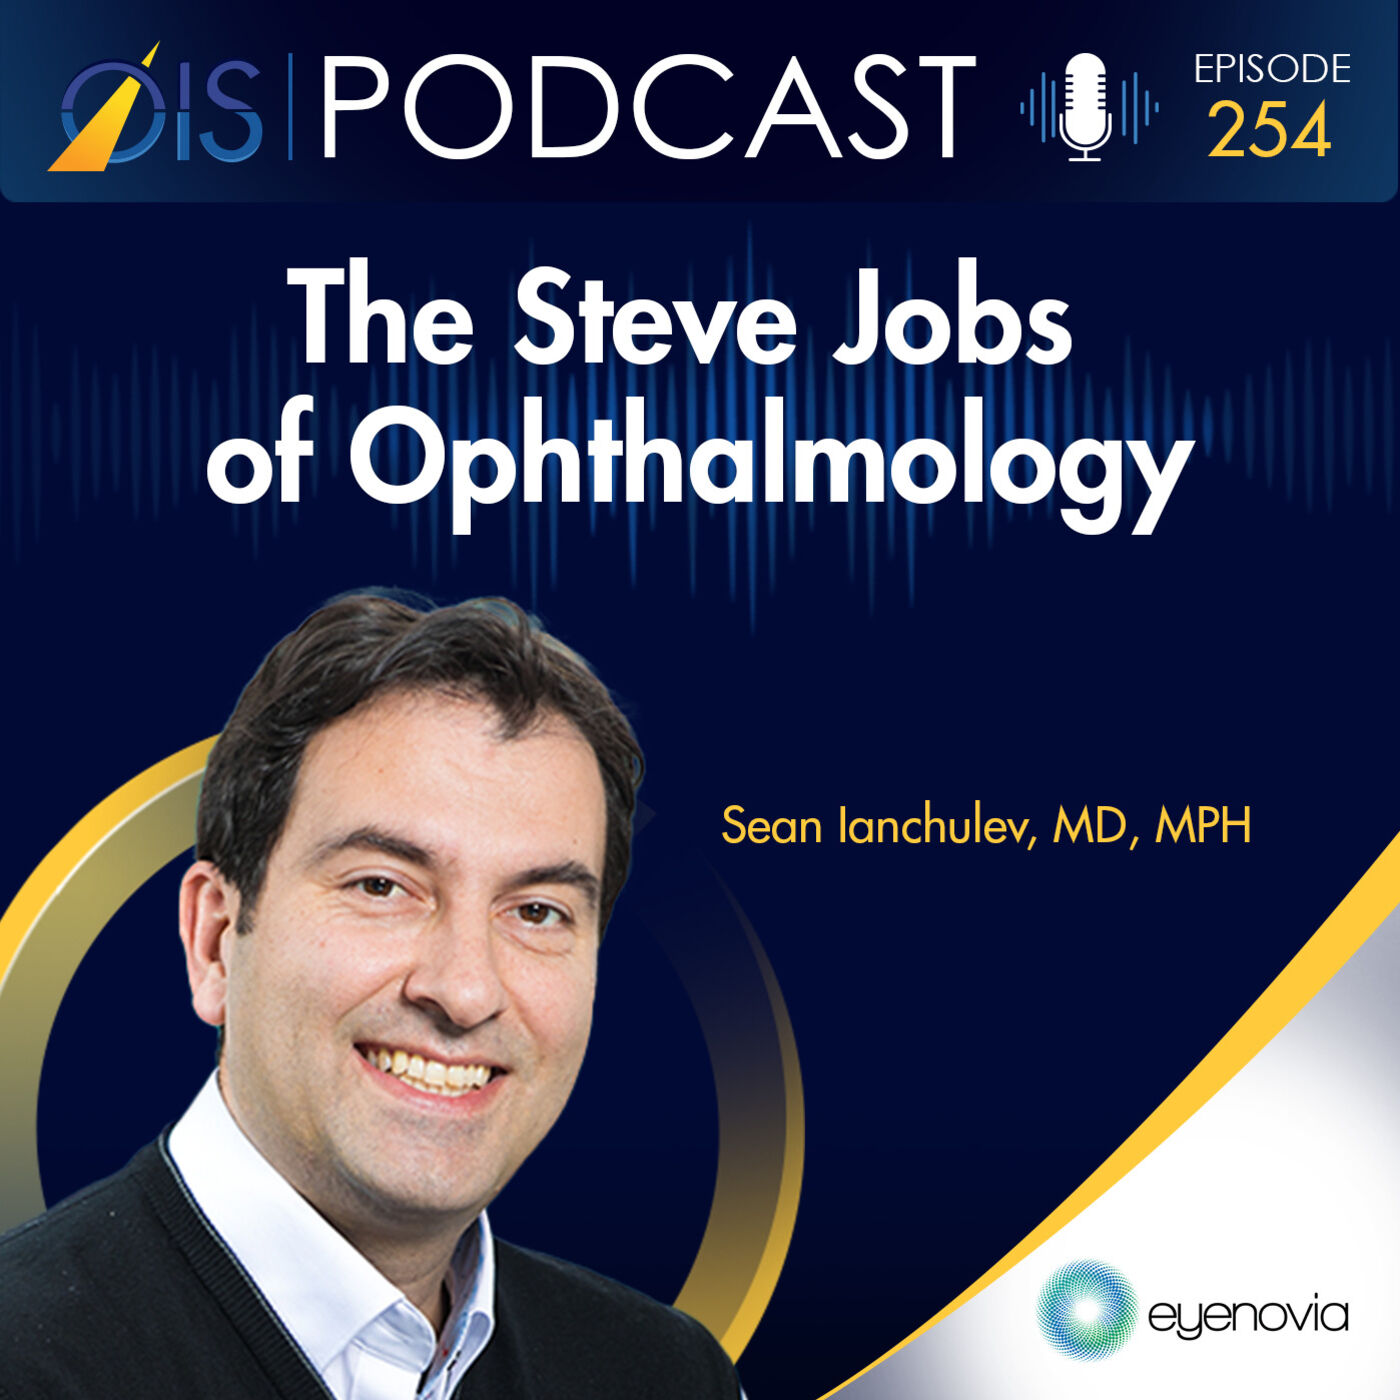 The Steve Jobs  of Ophthalmology